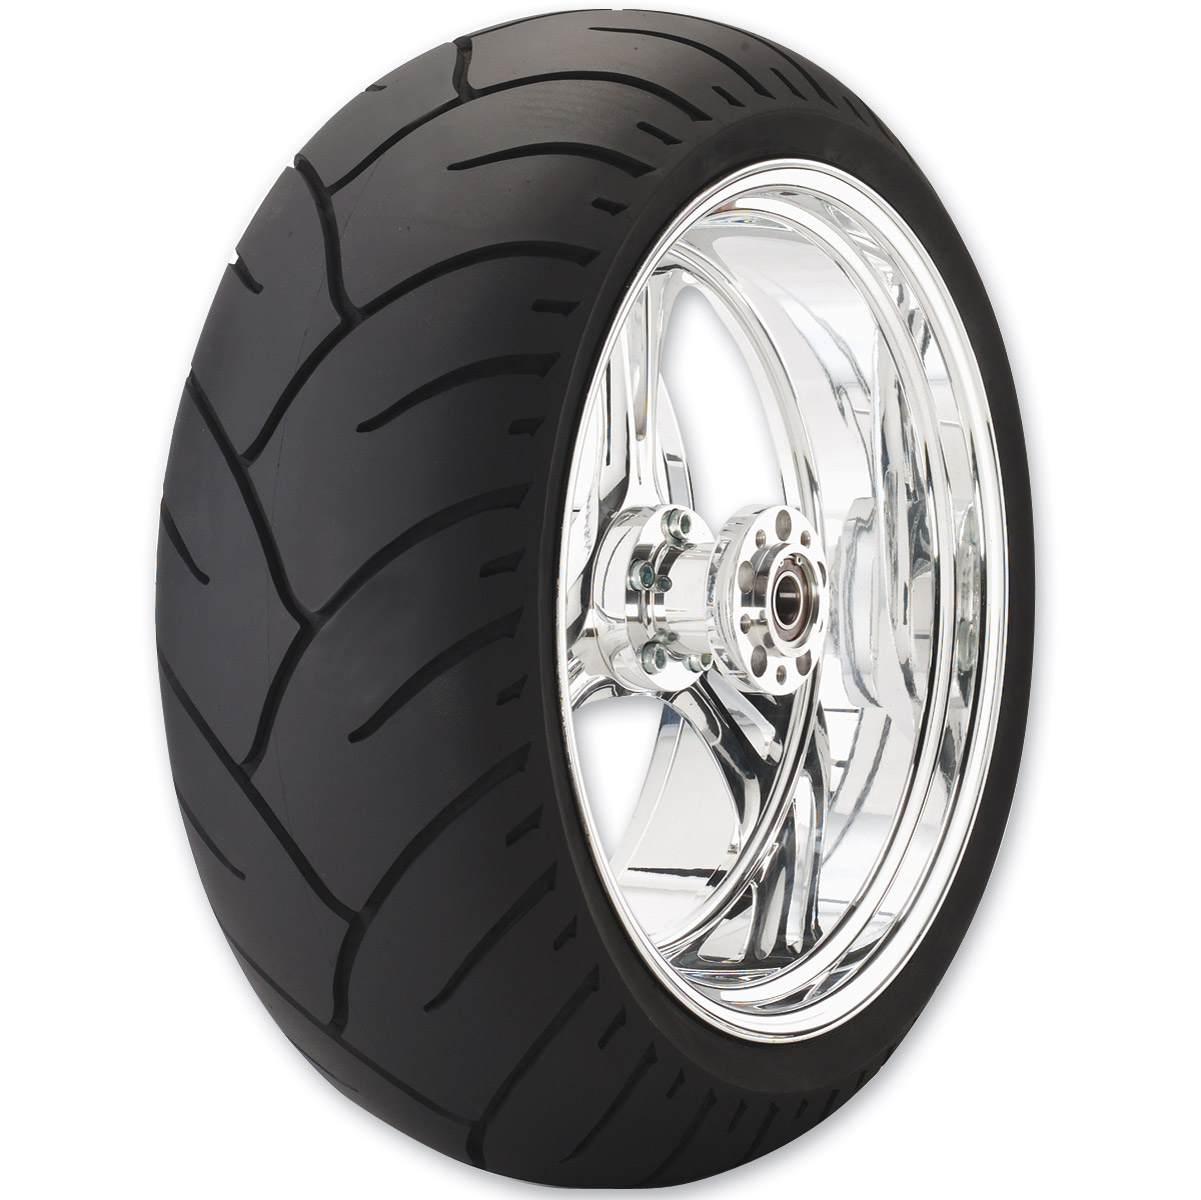 Dunlop Elite 3 250/40R18 Rear Tire